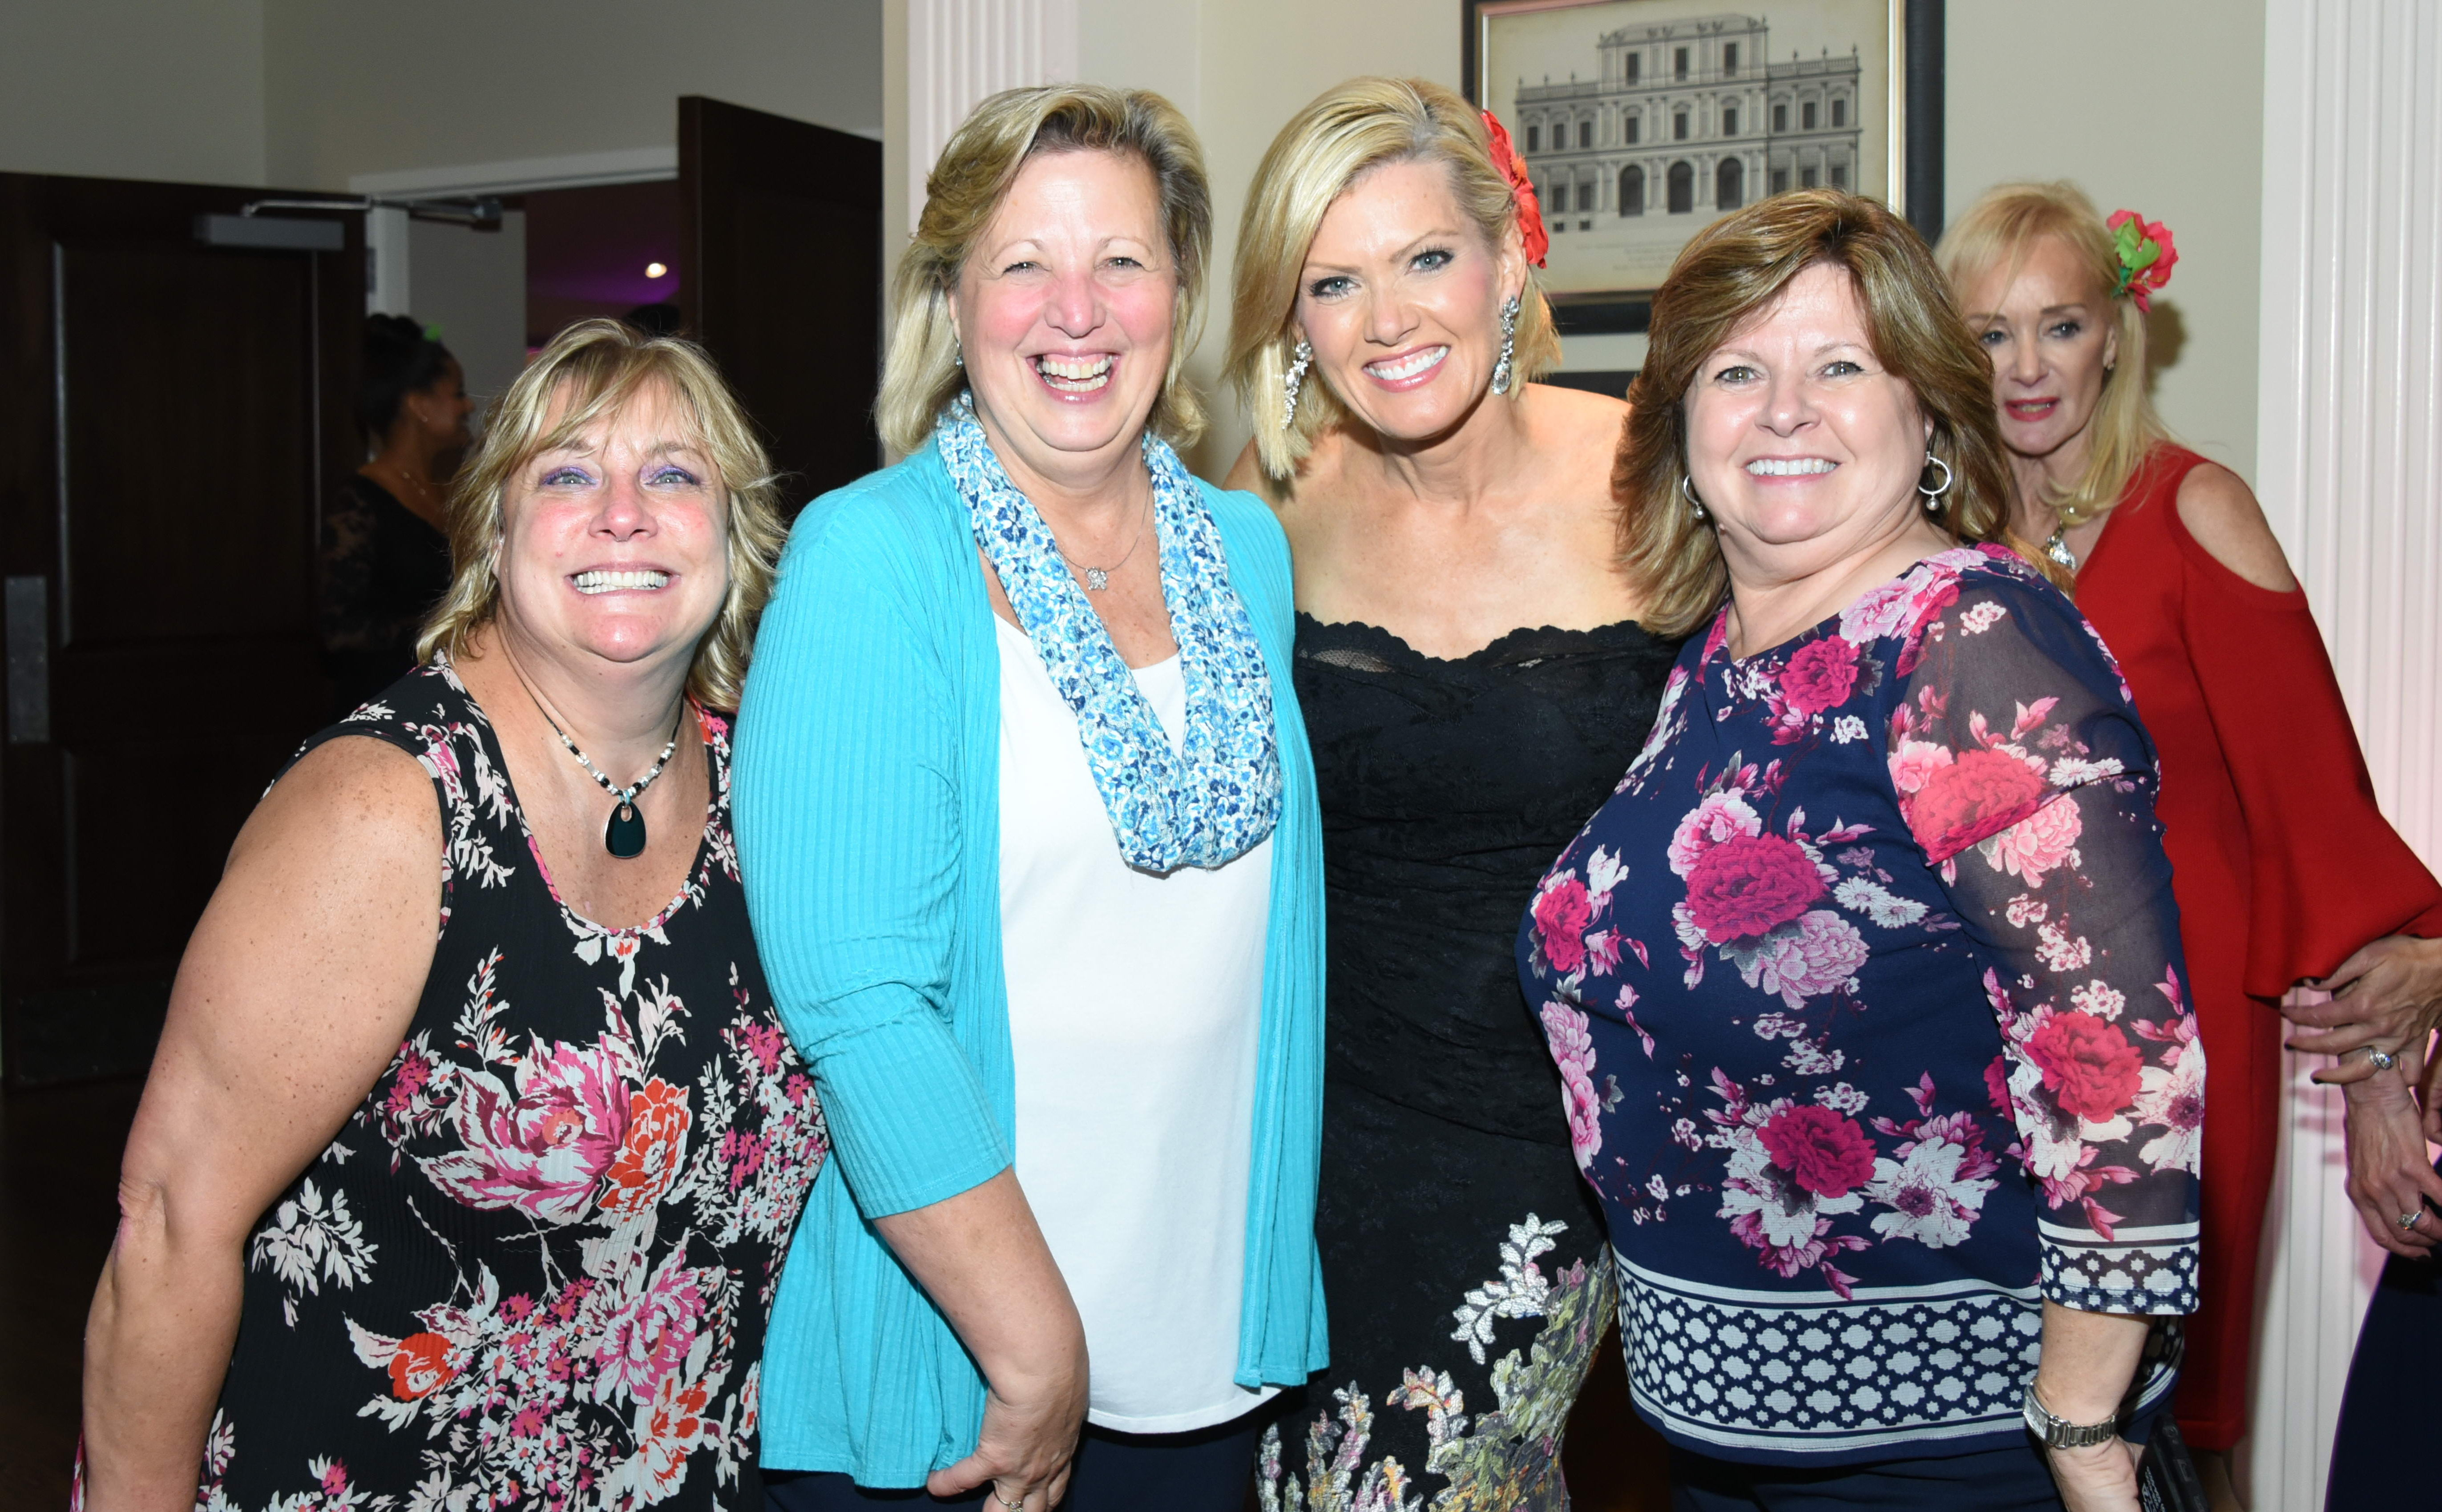 21st Annual Girls' Night Out Fashion Show Benefit set Oct. 14 in Springfield